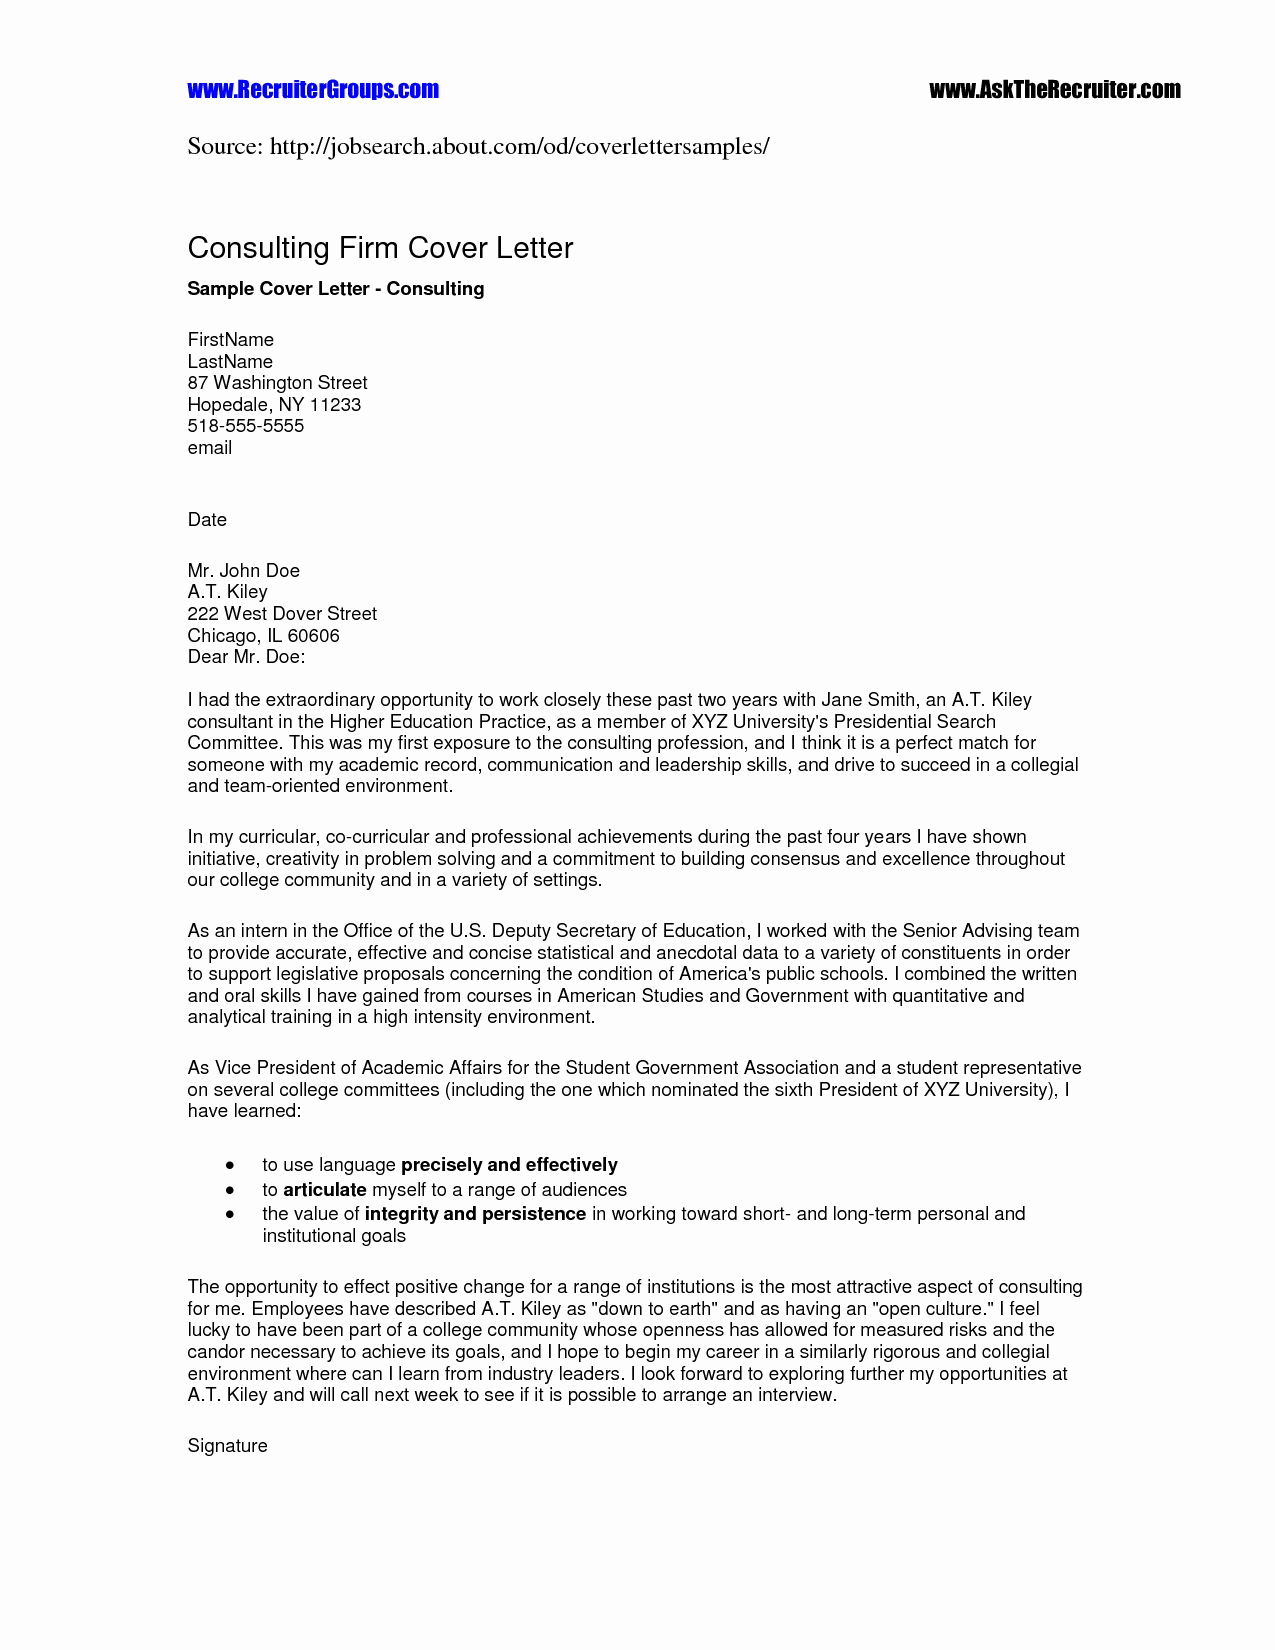 Engineering Cover Letter Template - Skill Based Resume Template Inspirational Lab assistant Resume Cover